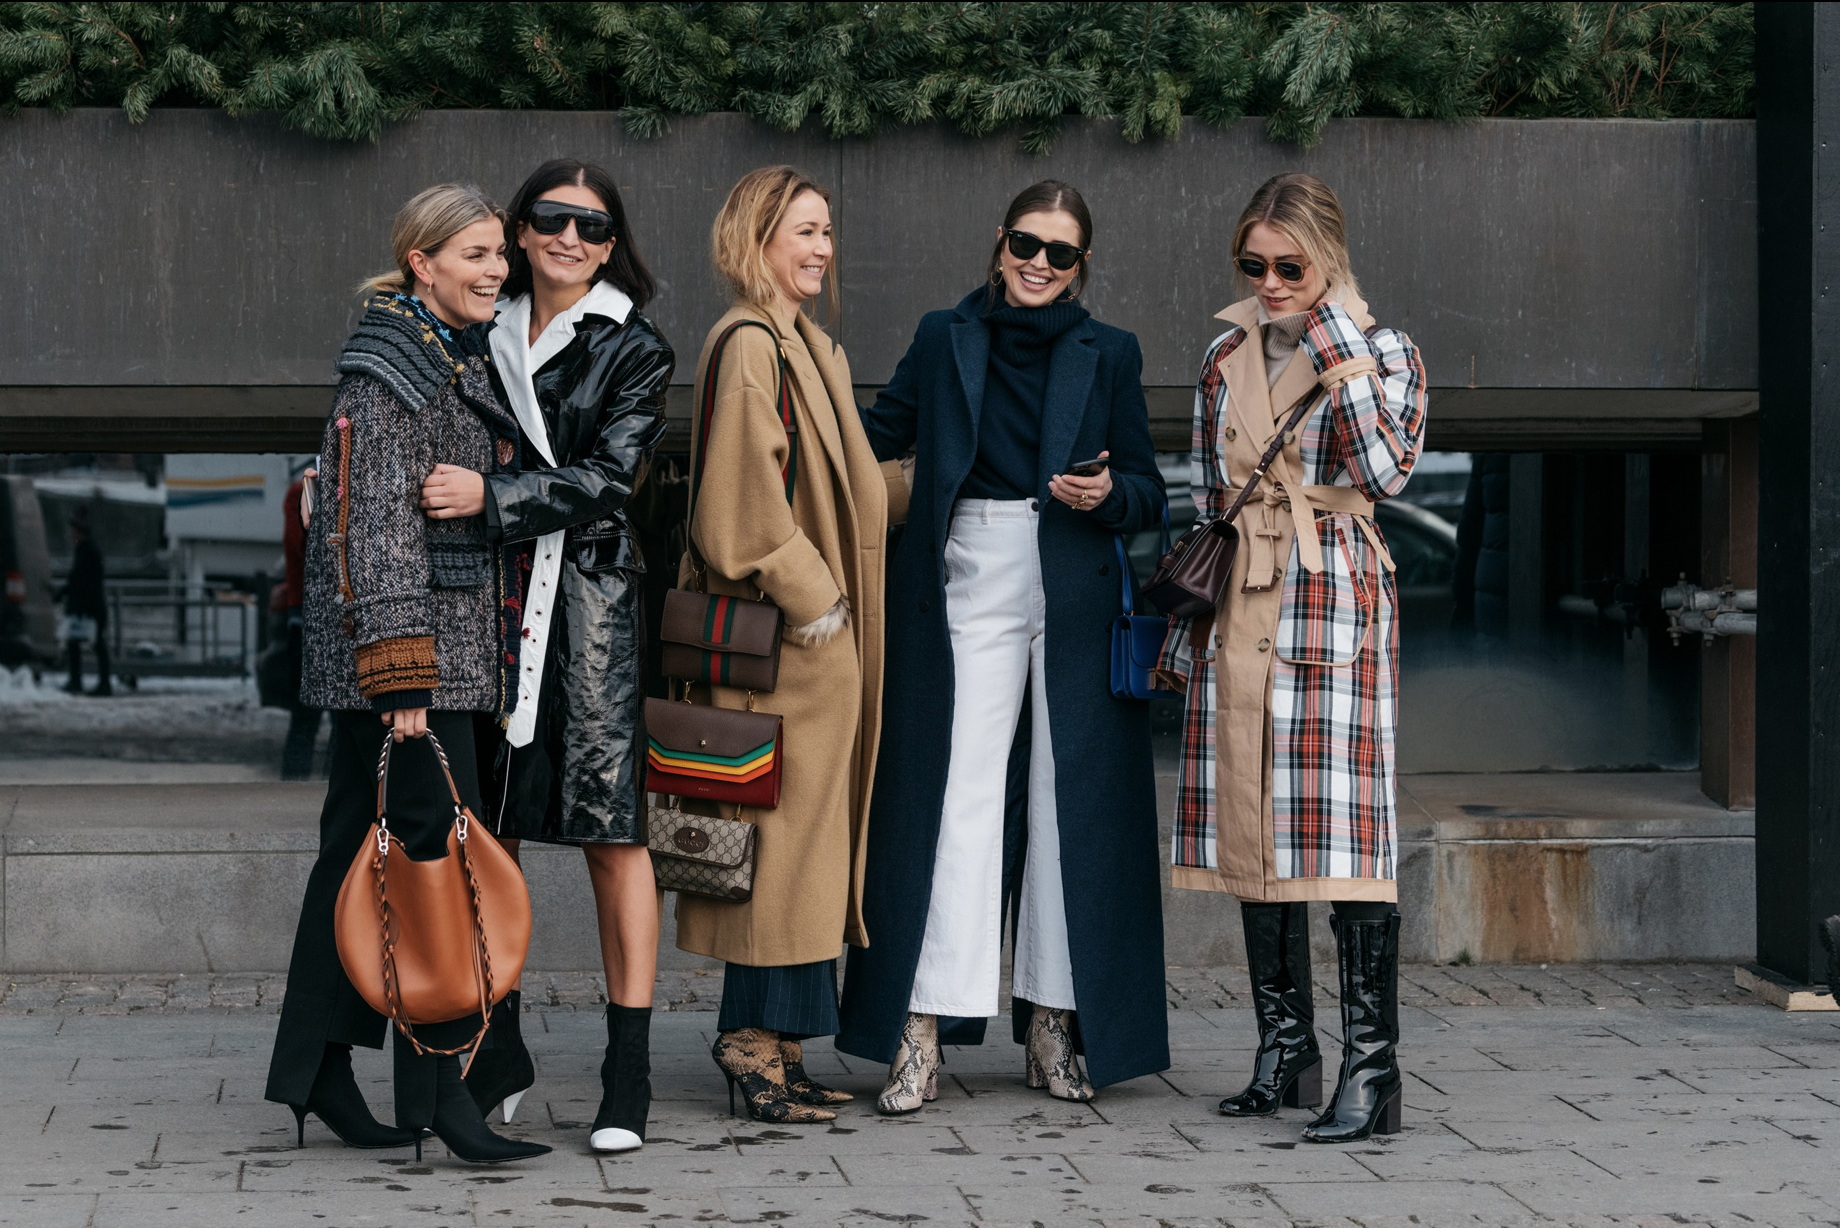 Street styles of the scandinavian fashion weeks personalissue